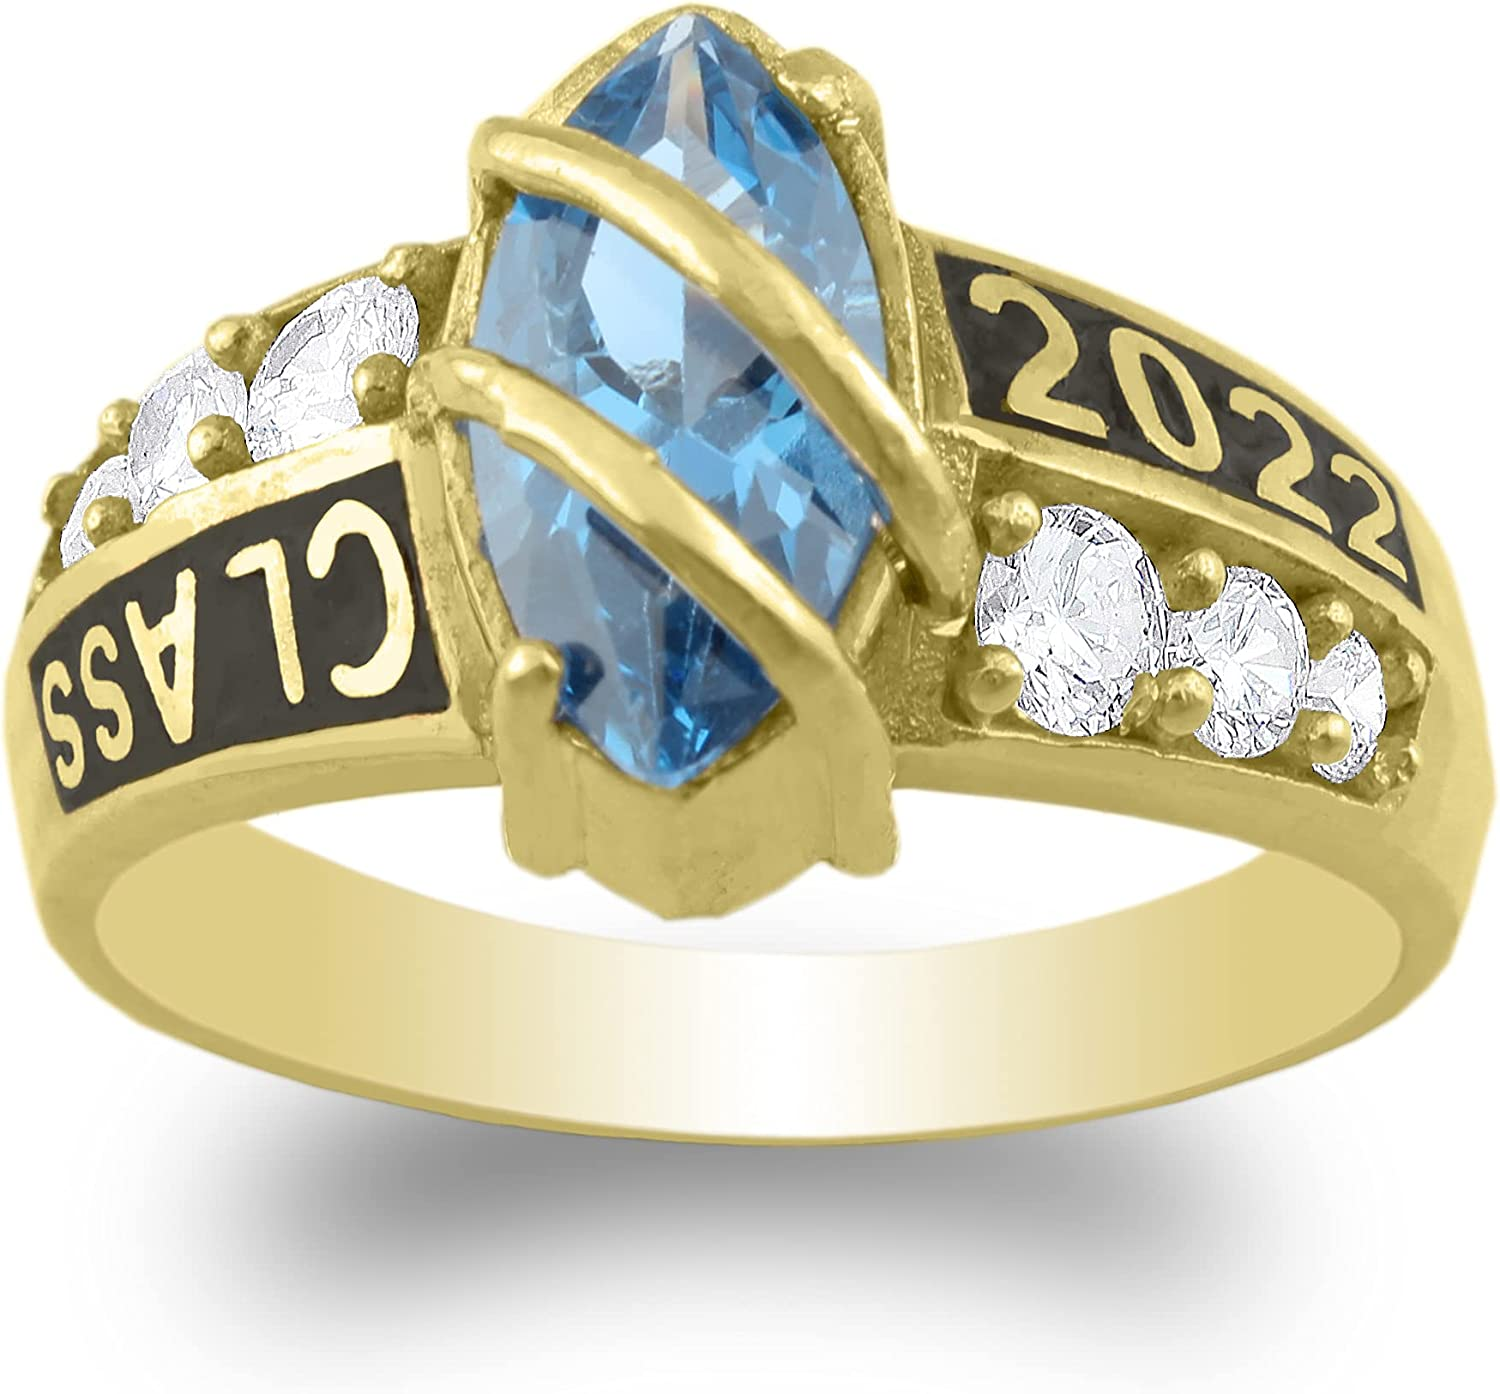 JamesJenny Yellow overseas Gold Plated 925 Sterling Sales of SALE items from new works Class of Silver 2022